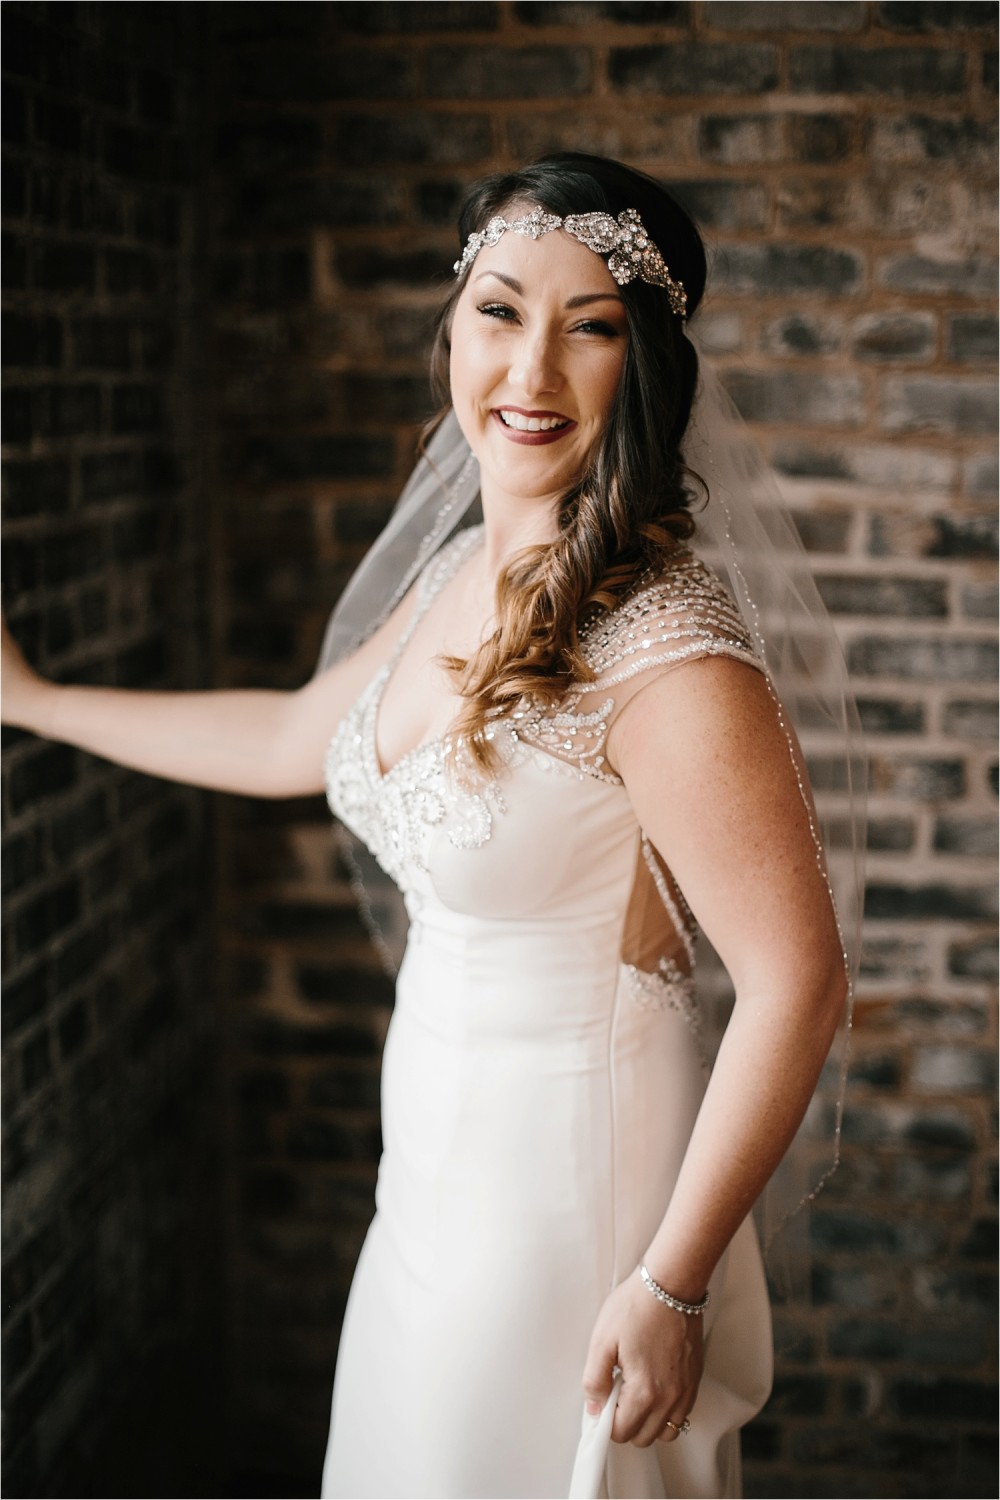 whittney-drew-__-an-intimate-wine-and-navy-wedding-in-an-industrial-venue-at-loft-123-in-paris-tx-by-north-texas-wedding-photographer-rachel-meagan-photography-_-021